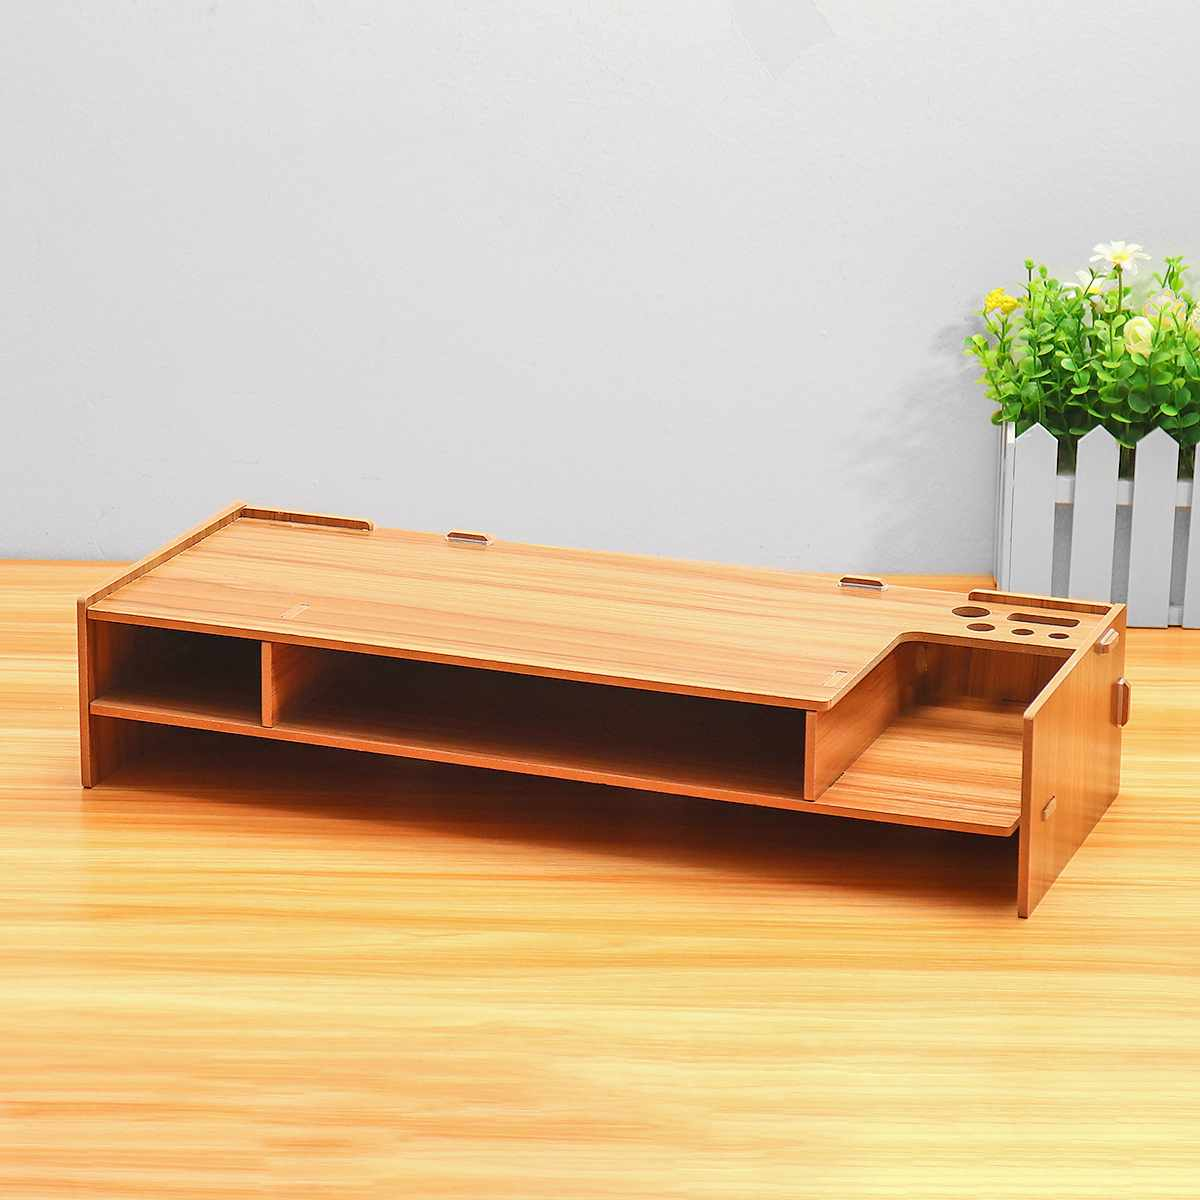 2-Tier Wood Shelf Plinth Multi-function Desktop Monitor Stand Computer Screen Riser Laptop Stand Holder For Notebook TV